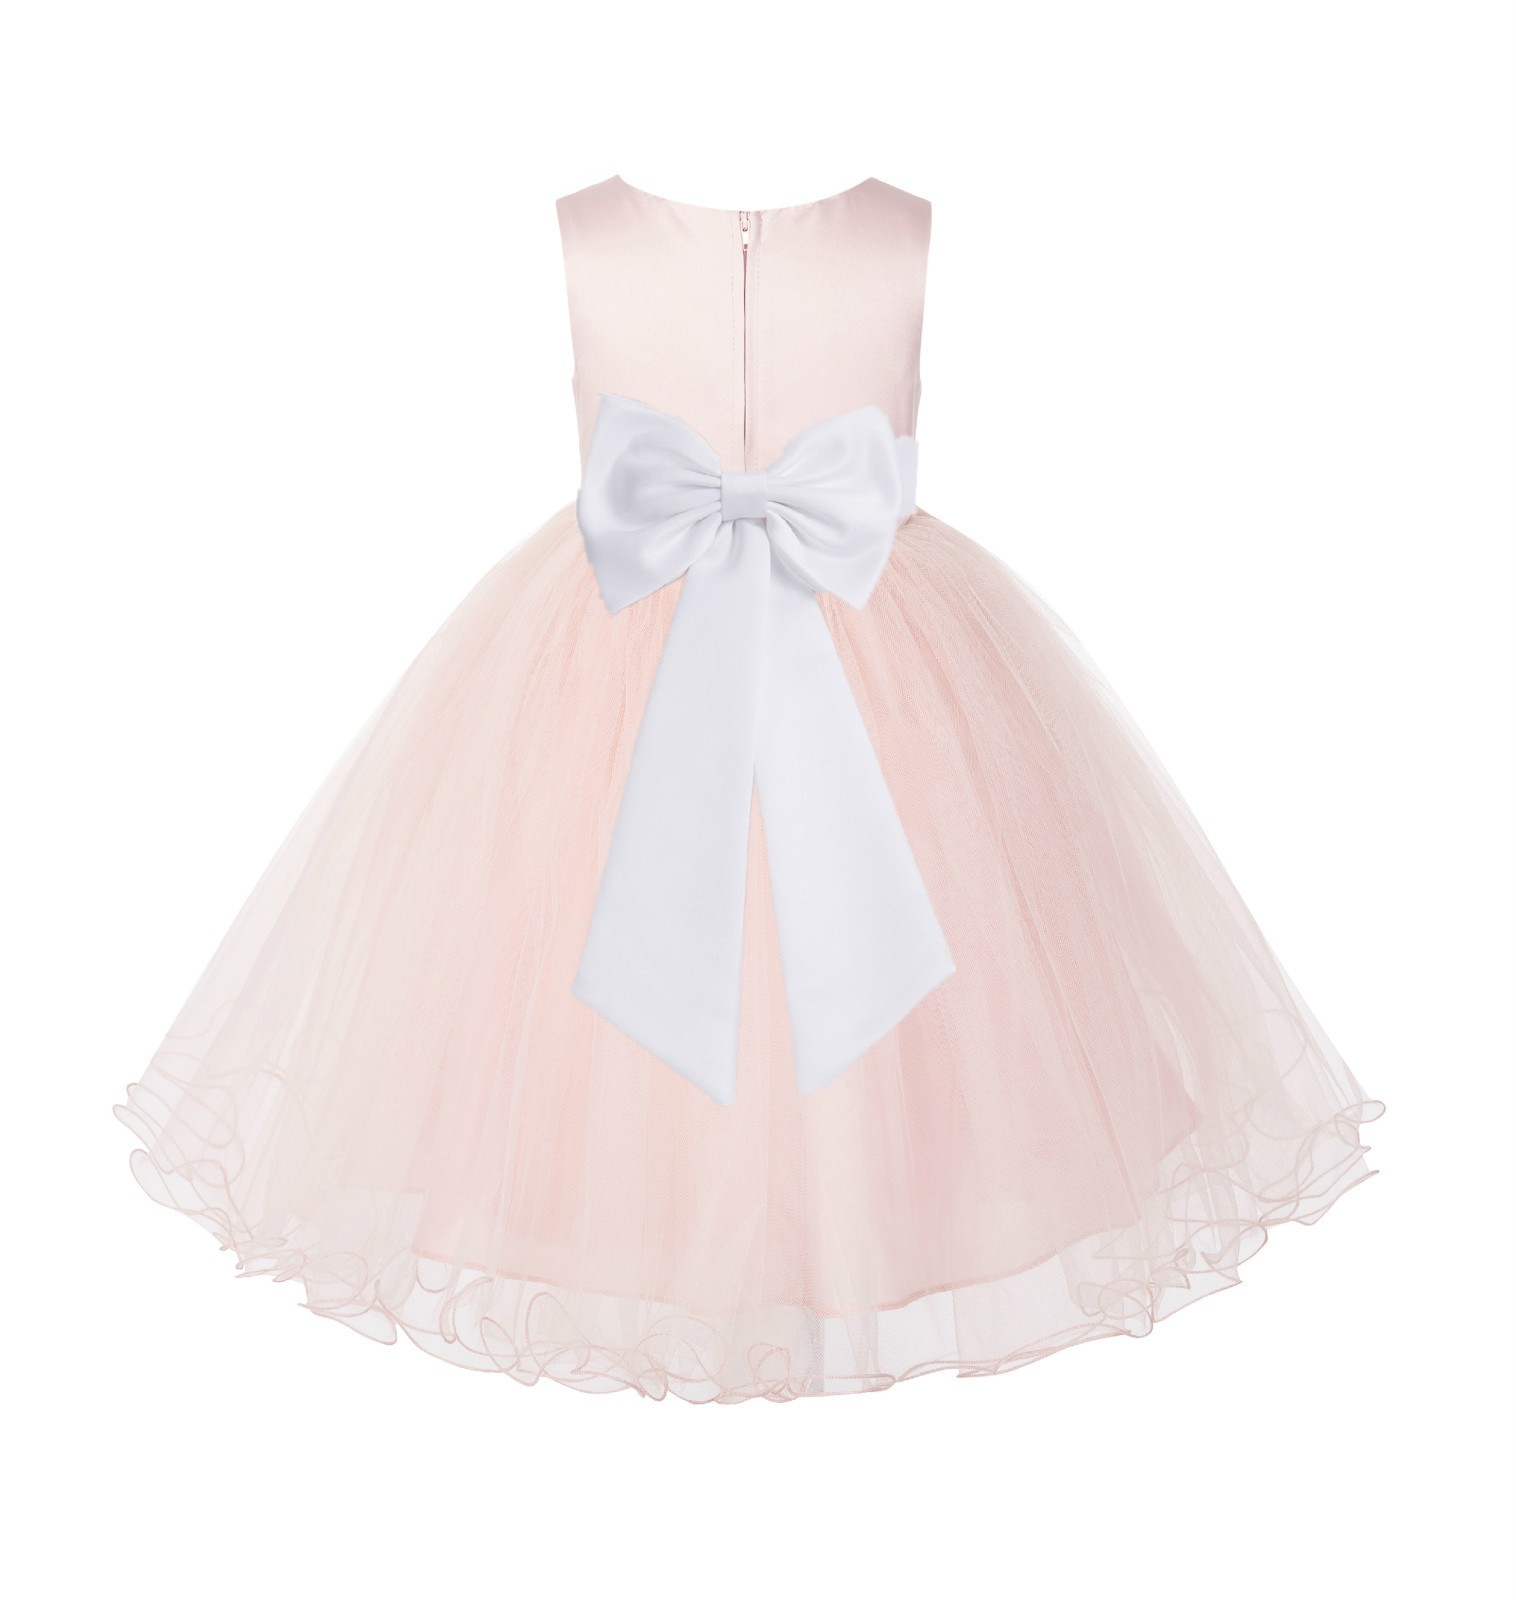 Blush PInk / White Tulle Rattail Edge Flower Girl Dress Wedding Bridesmaid 829T